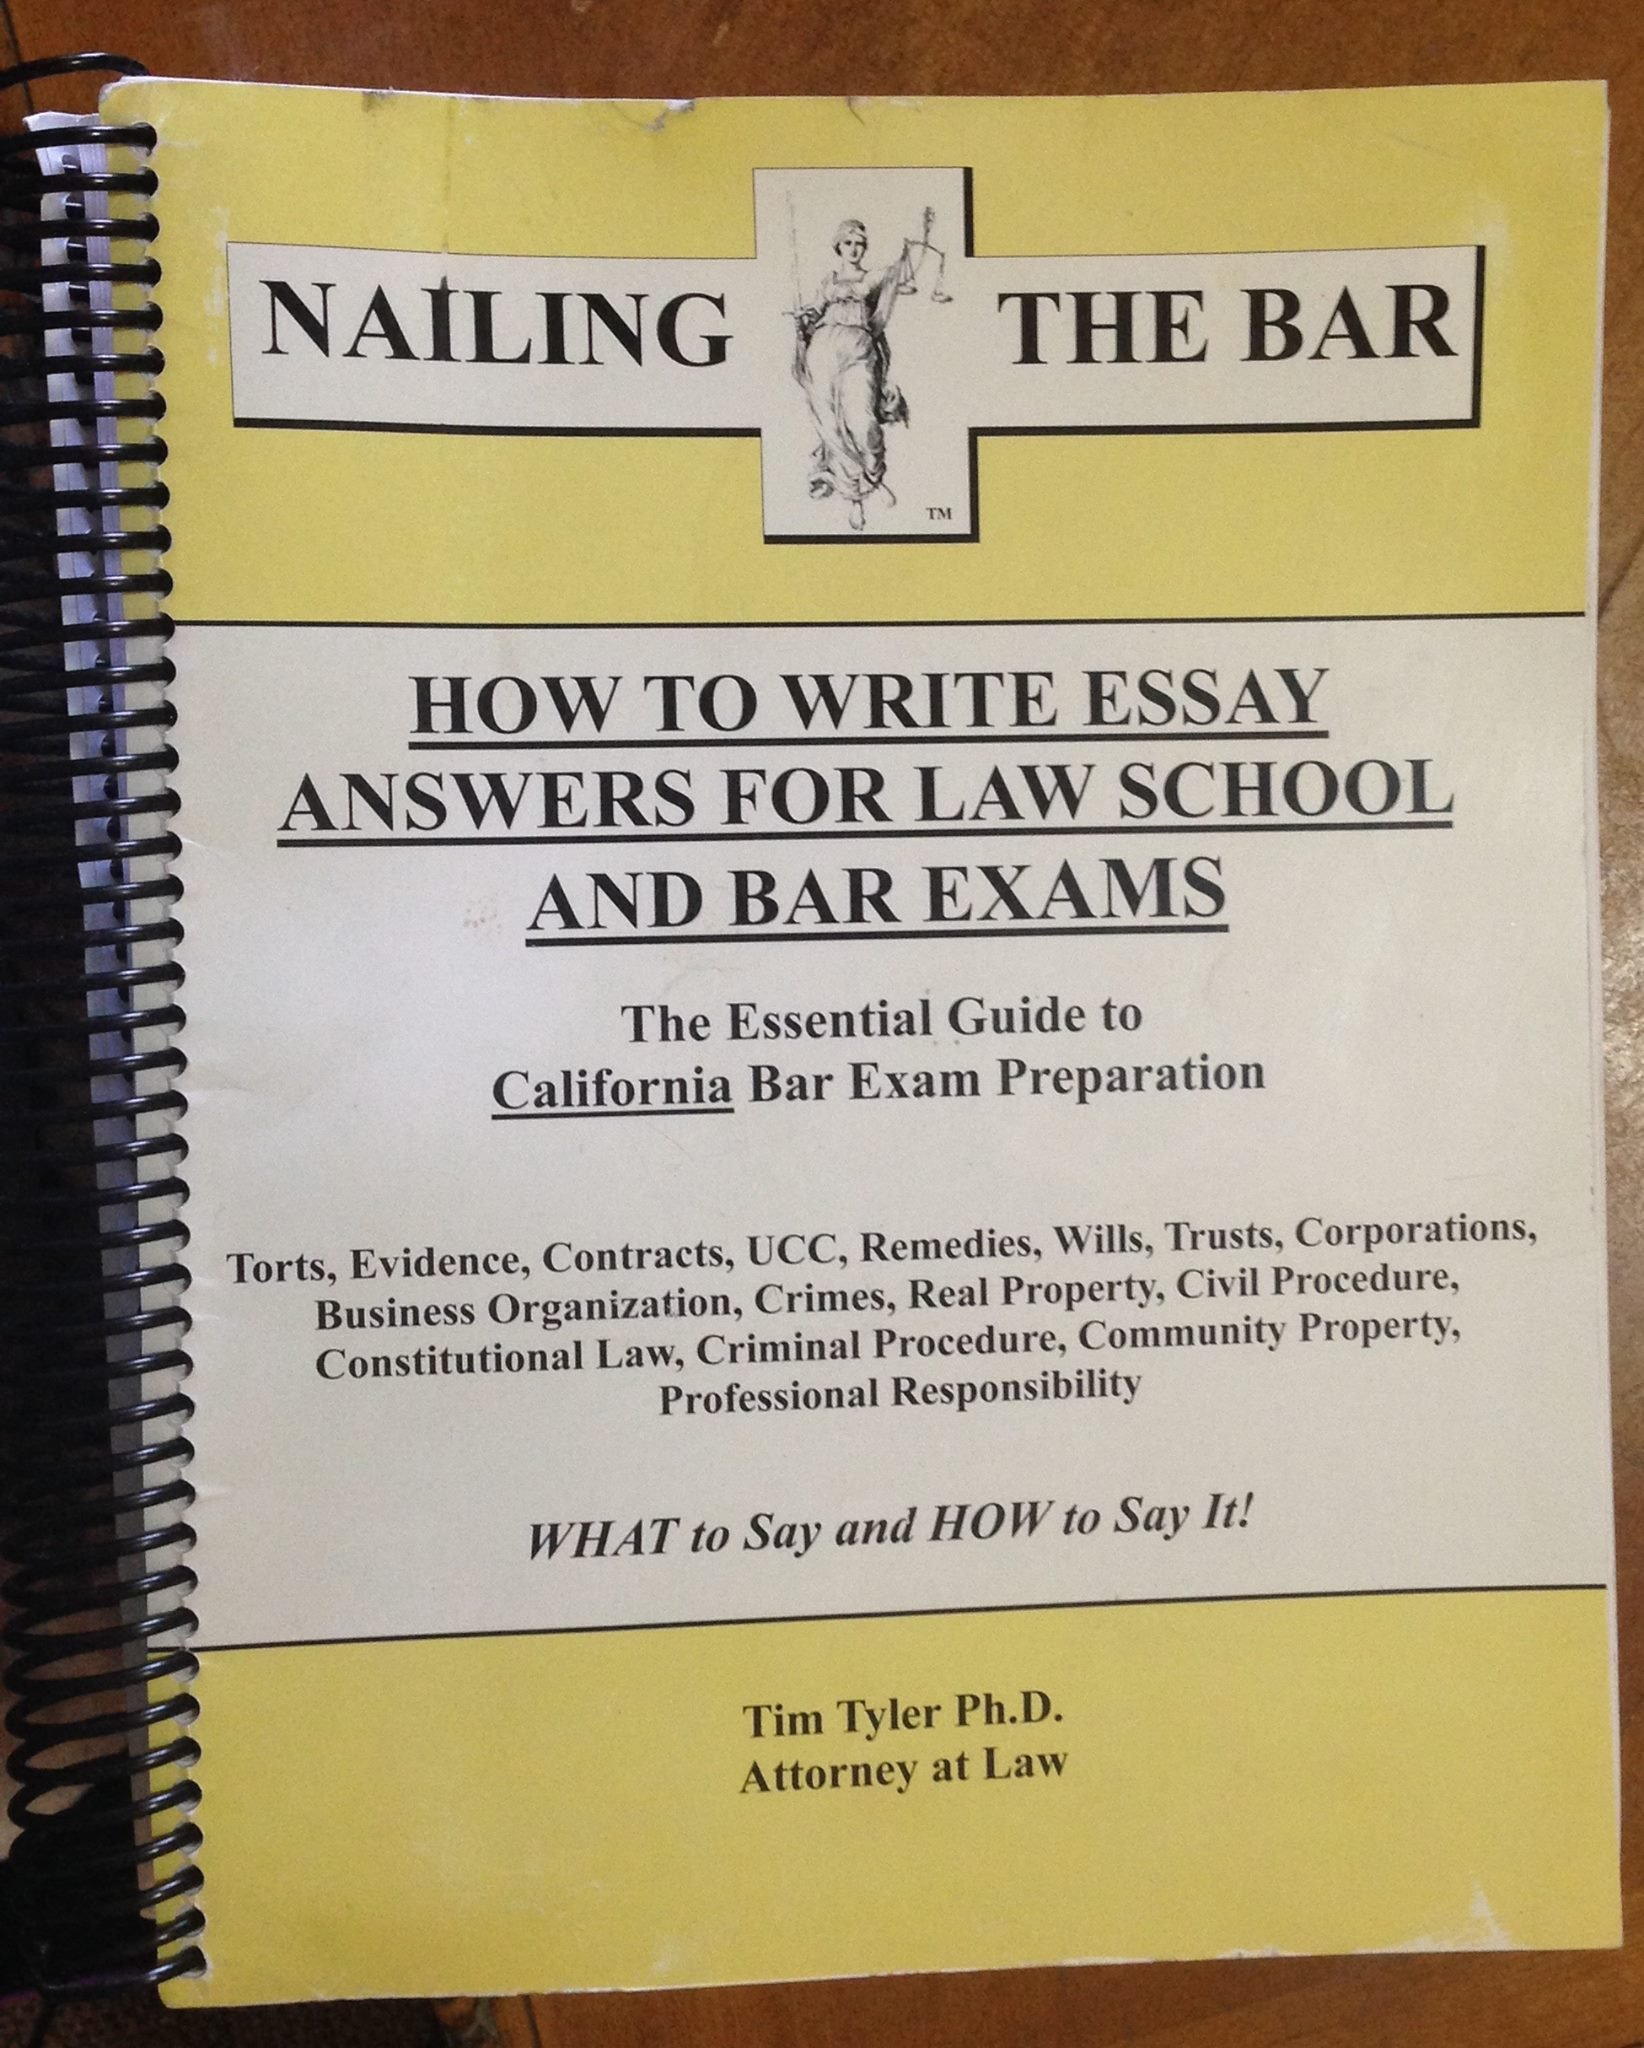 NAILING THE BAR (HOW TO WRITE ESSAY ANSWERS FOR LAW SCHOOL AND BAR EXAMS) pdf